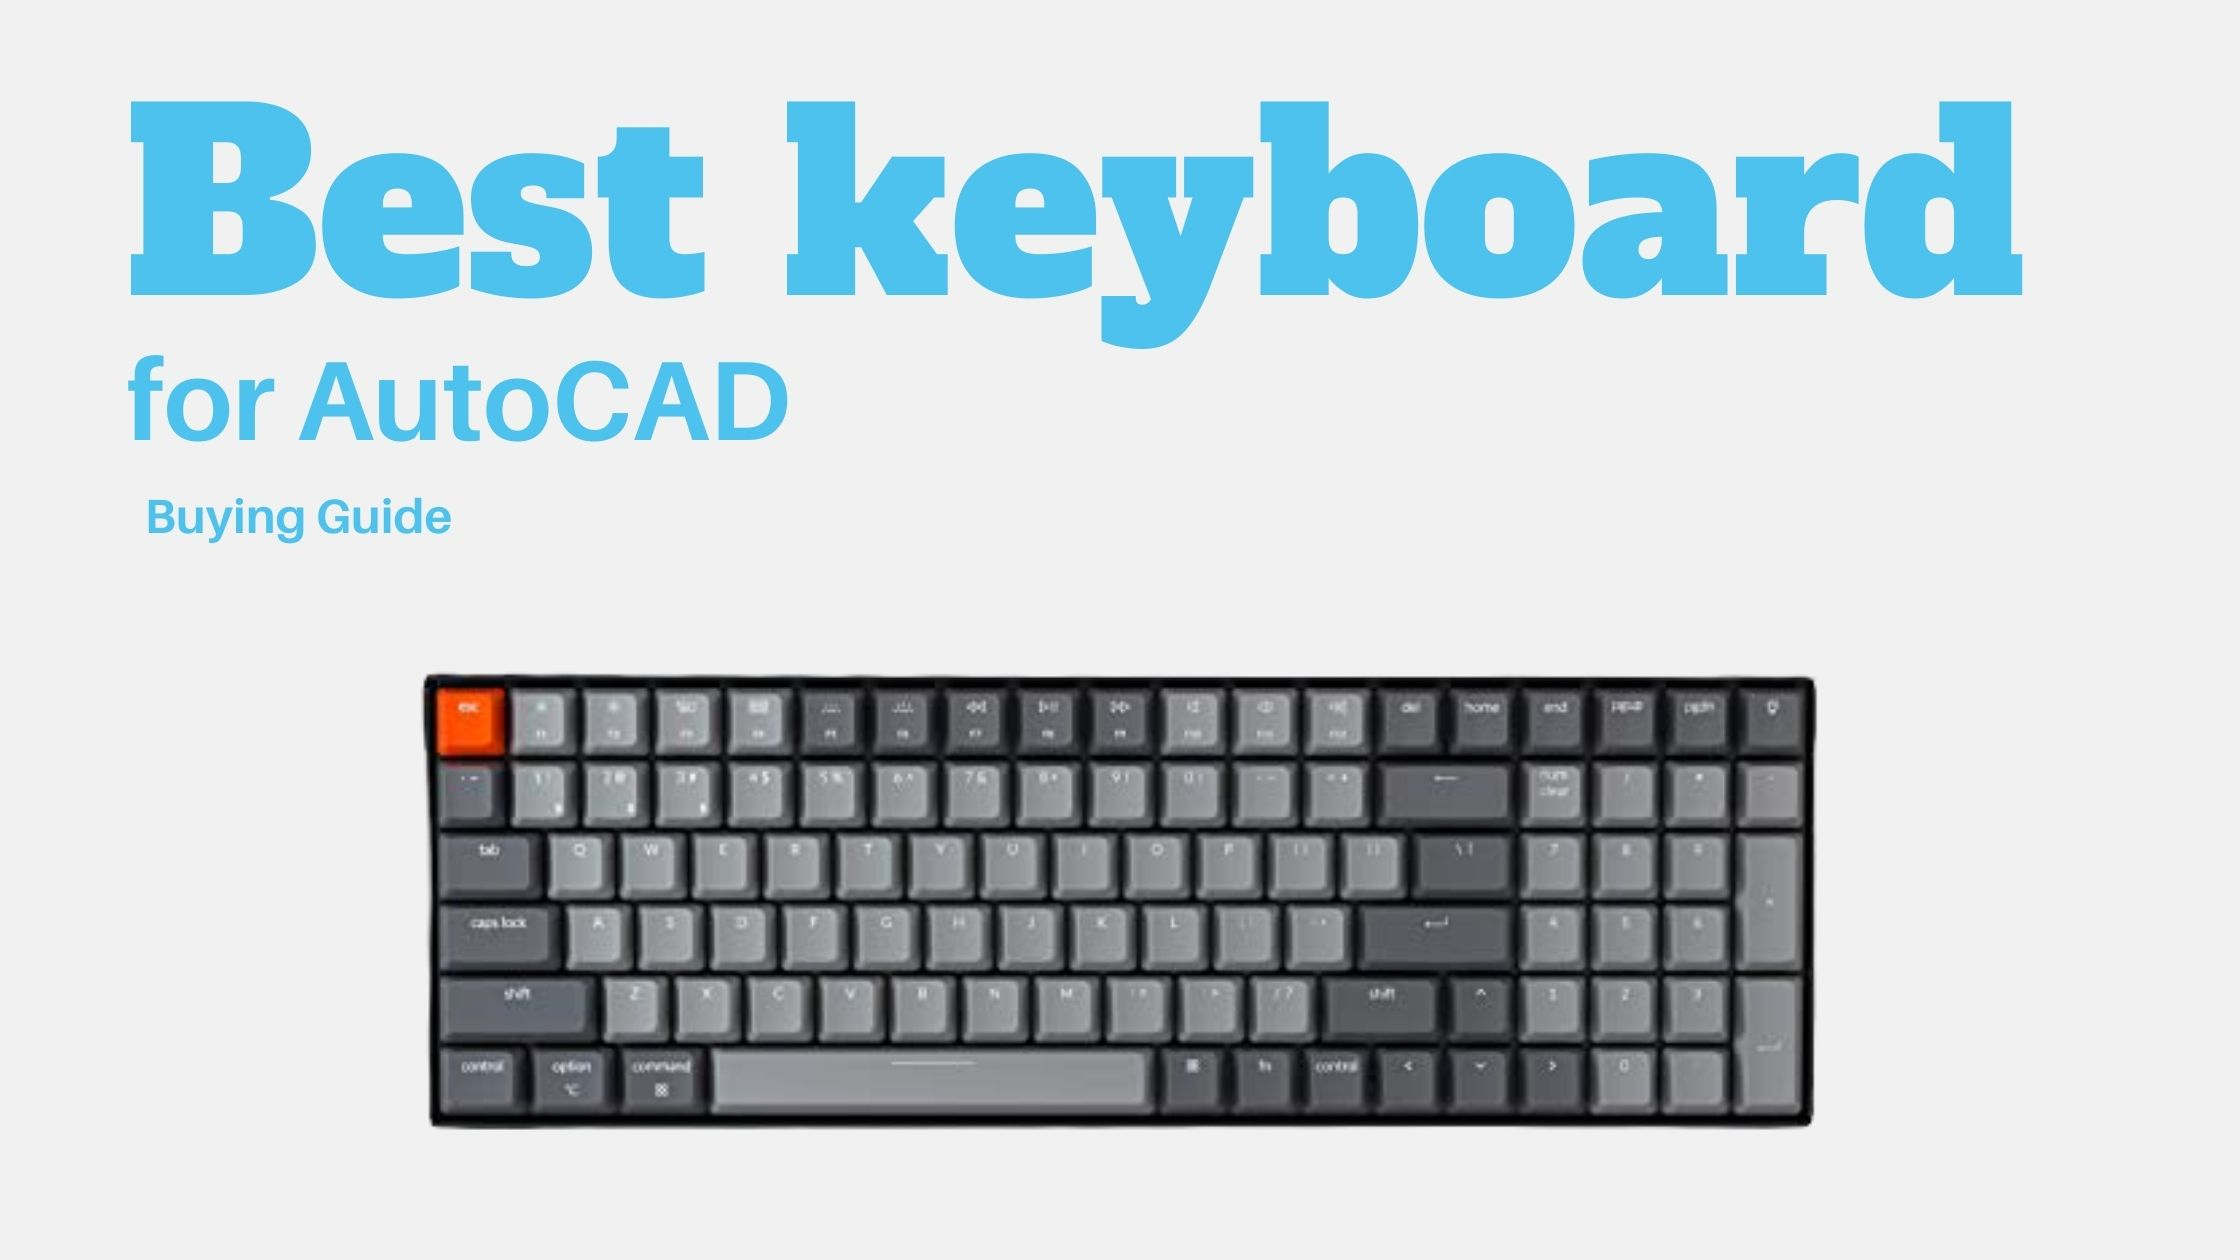 Best keyboard for AutoCAD